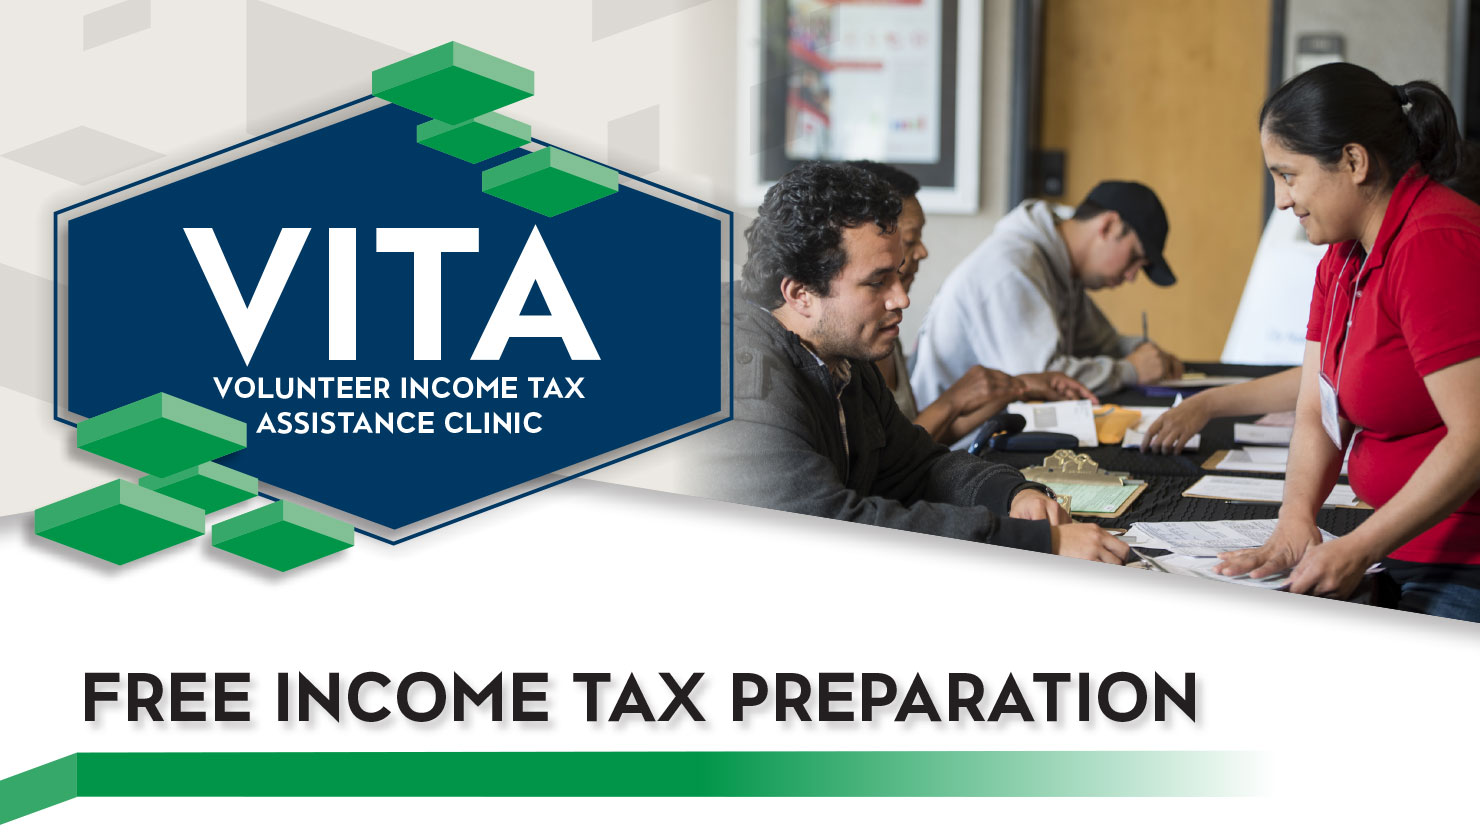 Accounting student helping with tax returns and VITA with FREE INCOME TAX ASSISTANCE